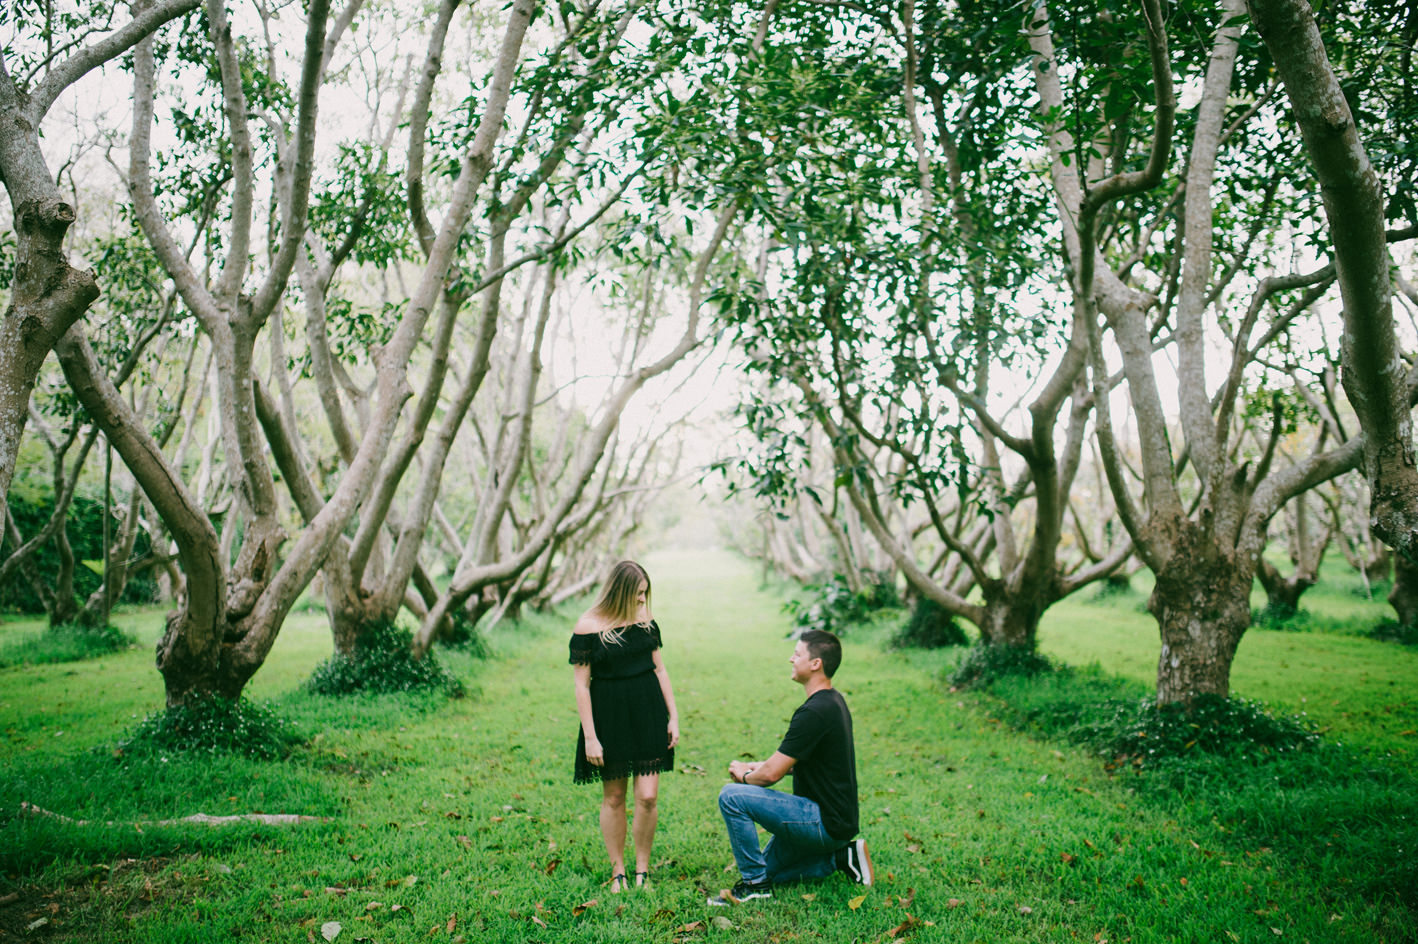 011-proposal-dan-ash_sophie-baker-photography